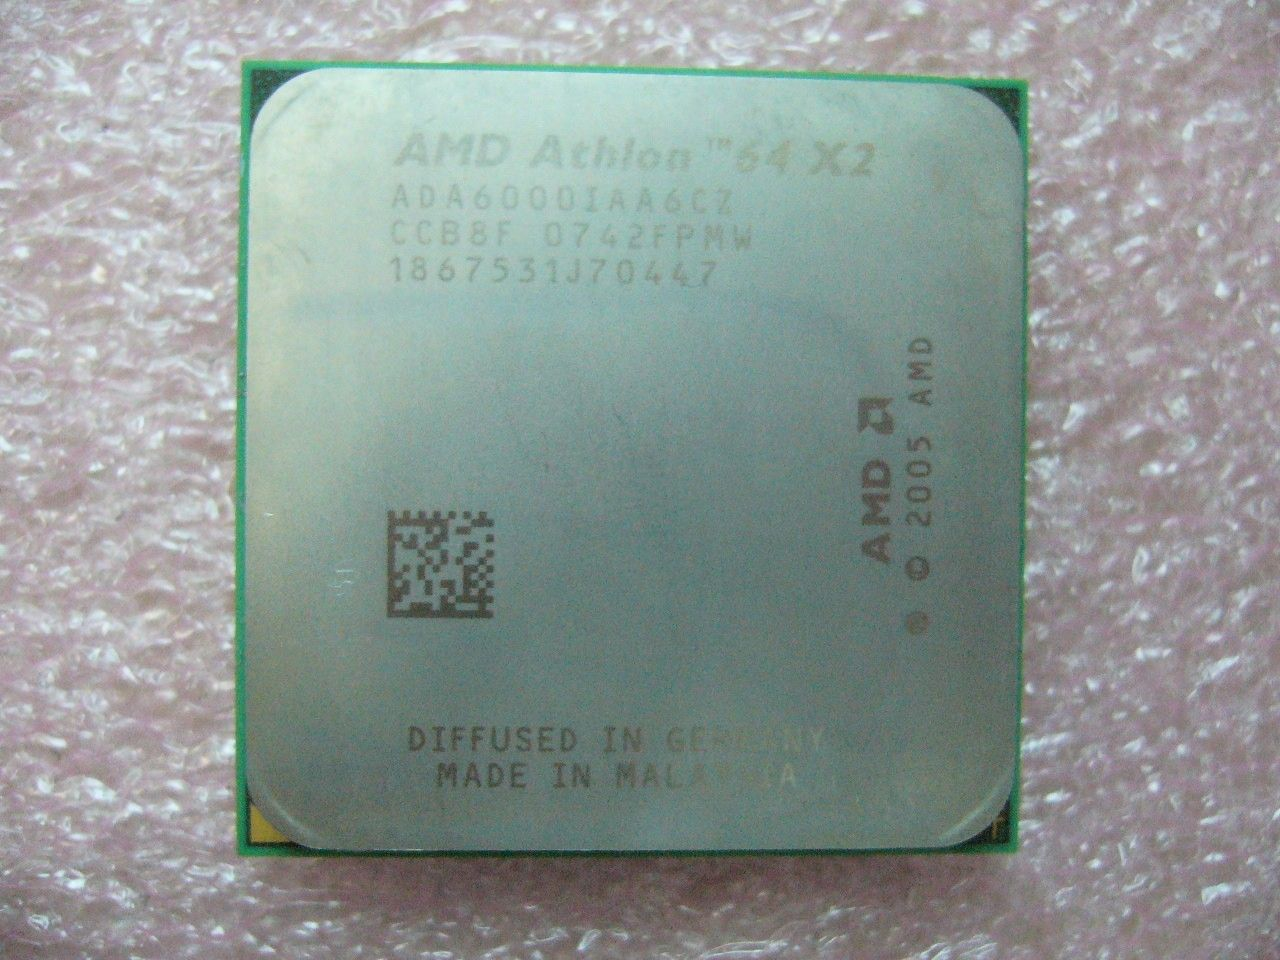 QTY 1x AMD Athlon 64 X2 6000+ 3 GHz Dual-Core (ADA6000IAA6CZ) CPU AM2 940-Pin